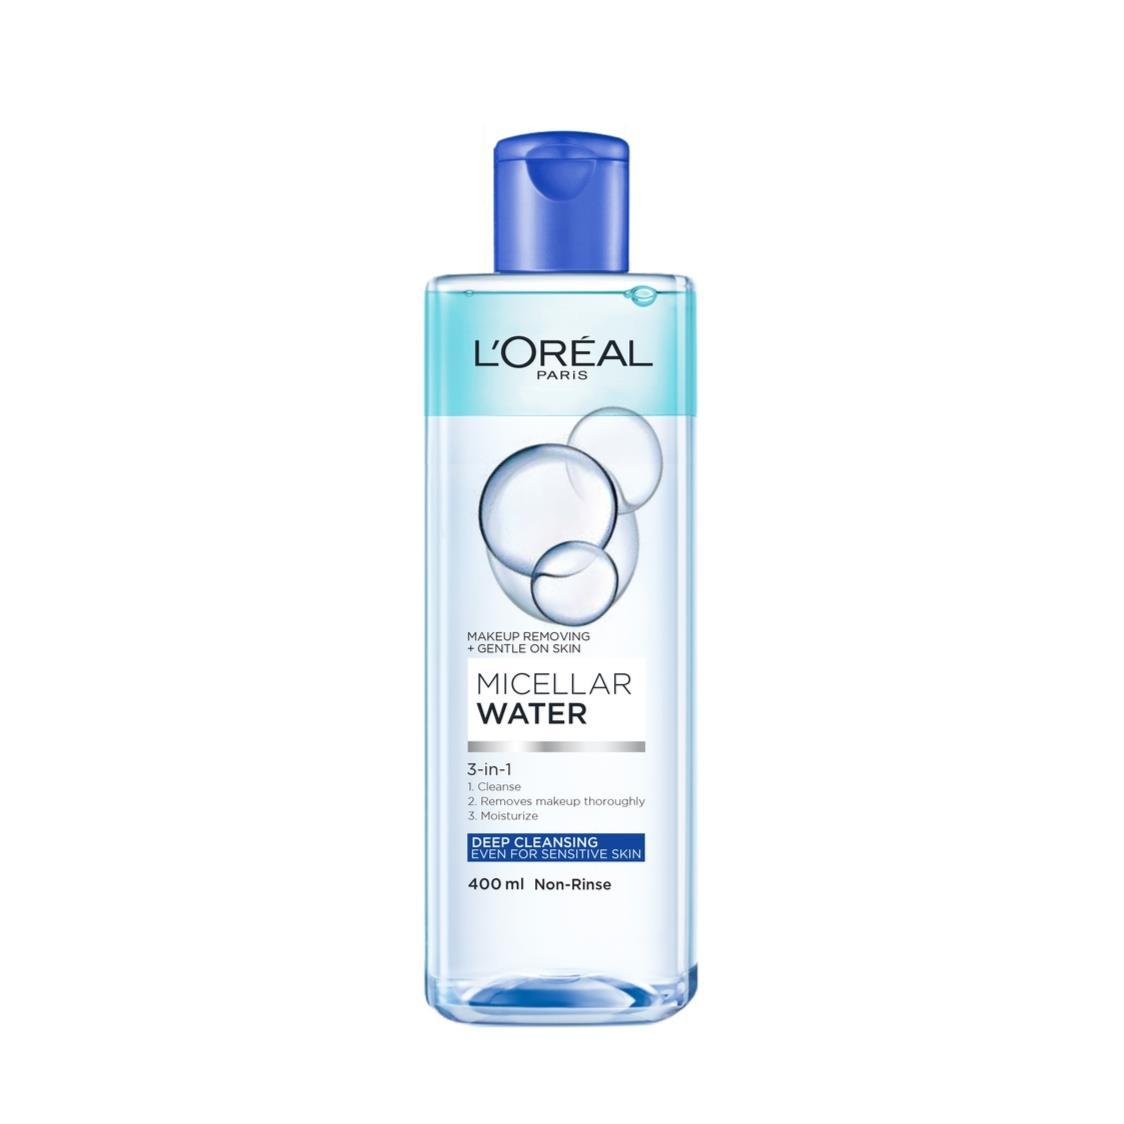 Pure Active Micellar Water 3 in 1 Deep Cleansing 400ml